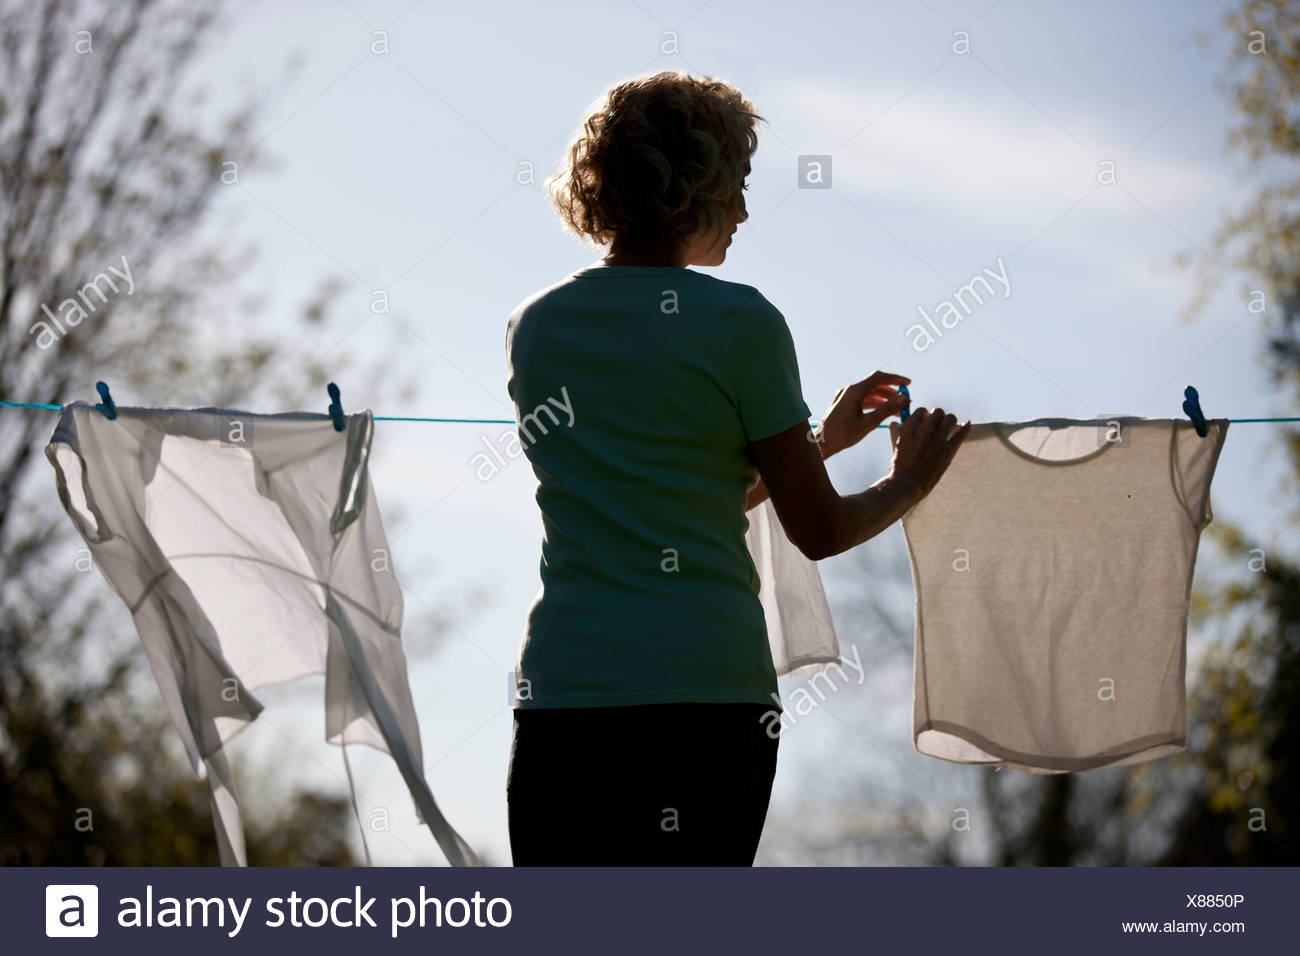 A mature woman pegging out washing on a washing line, rear view - Stock Image